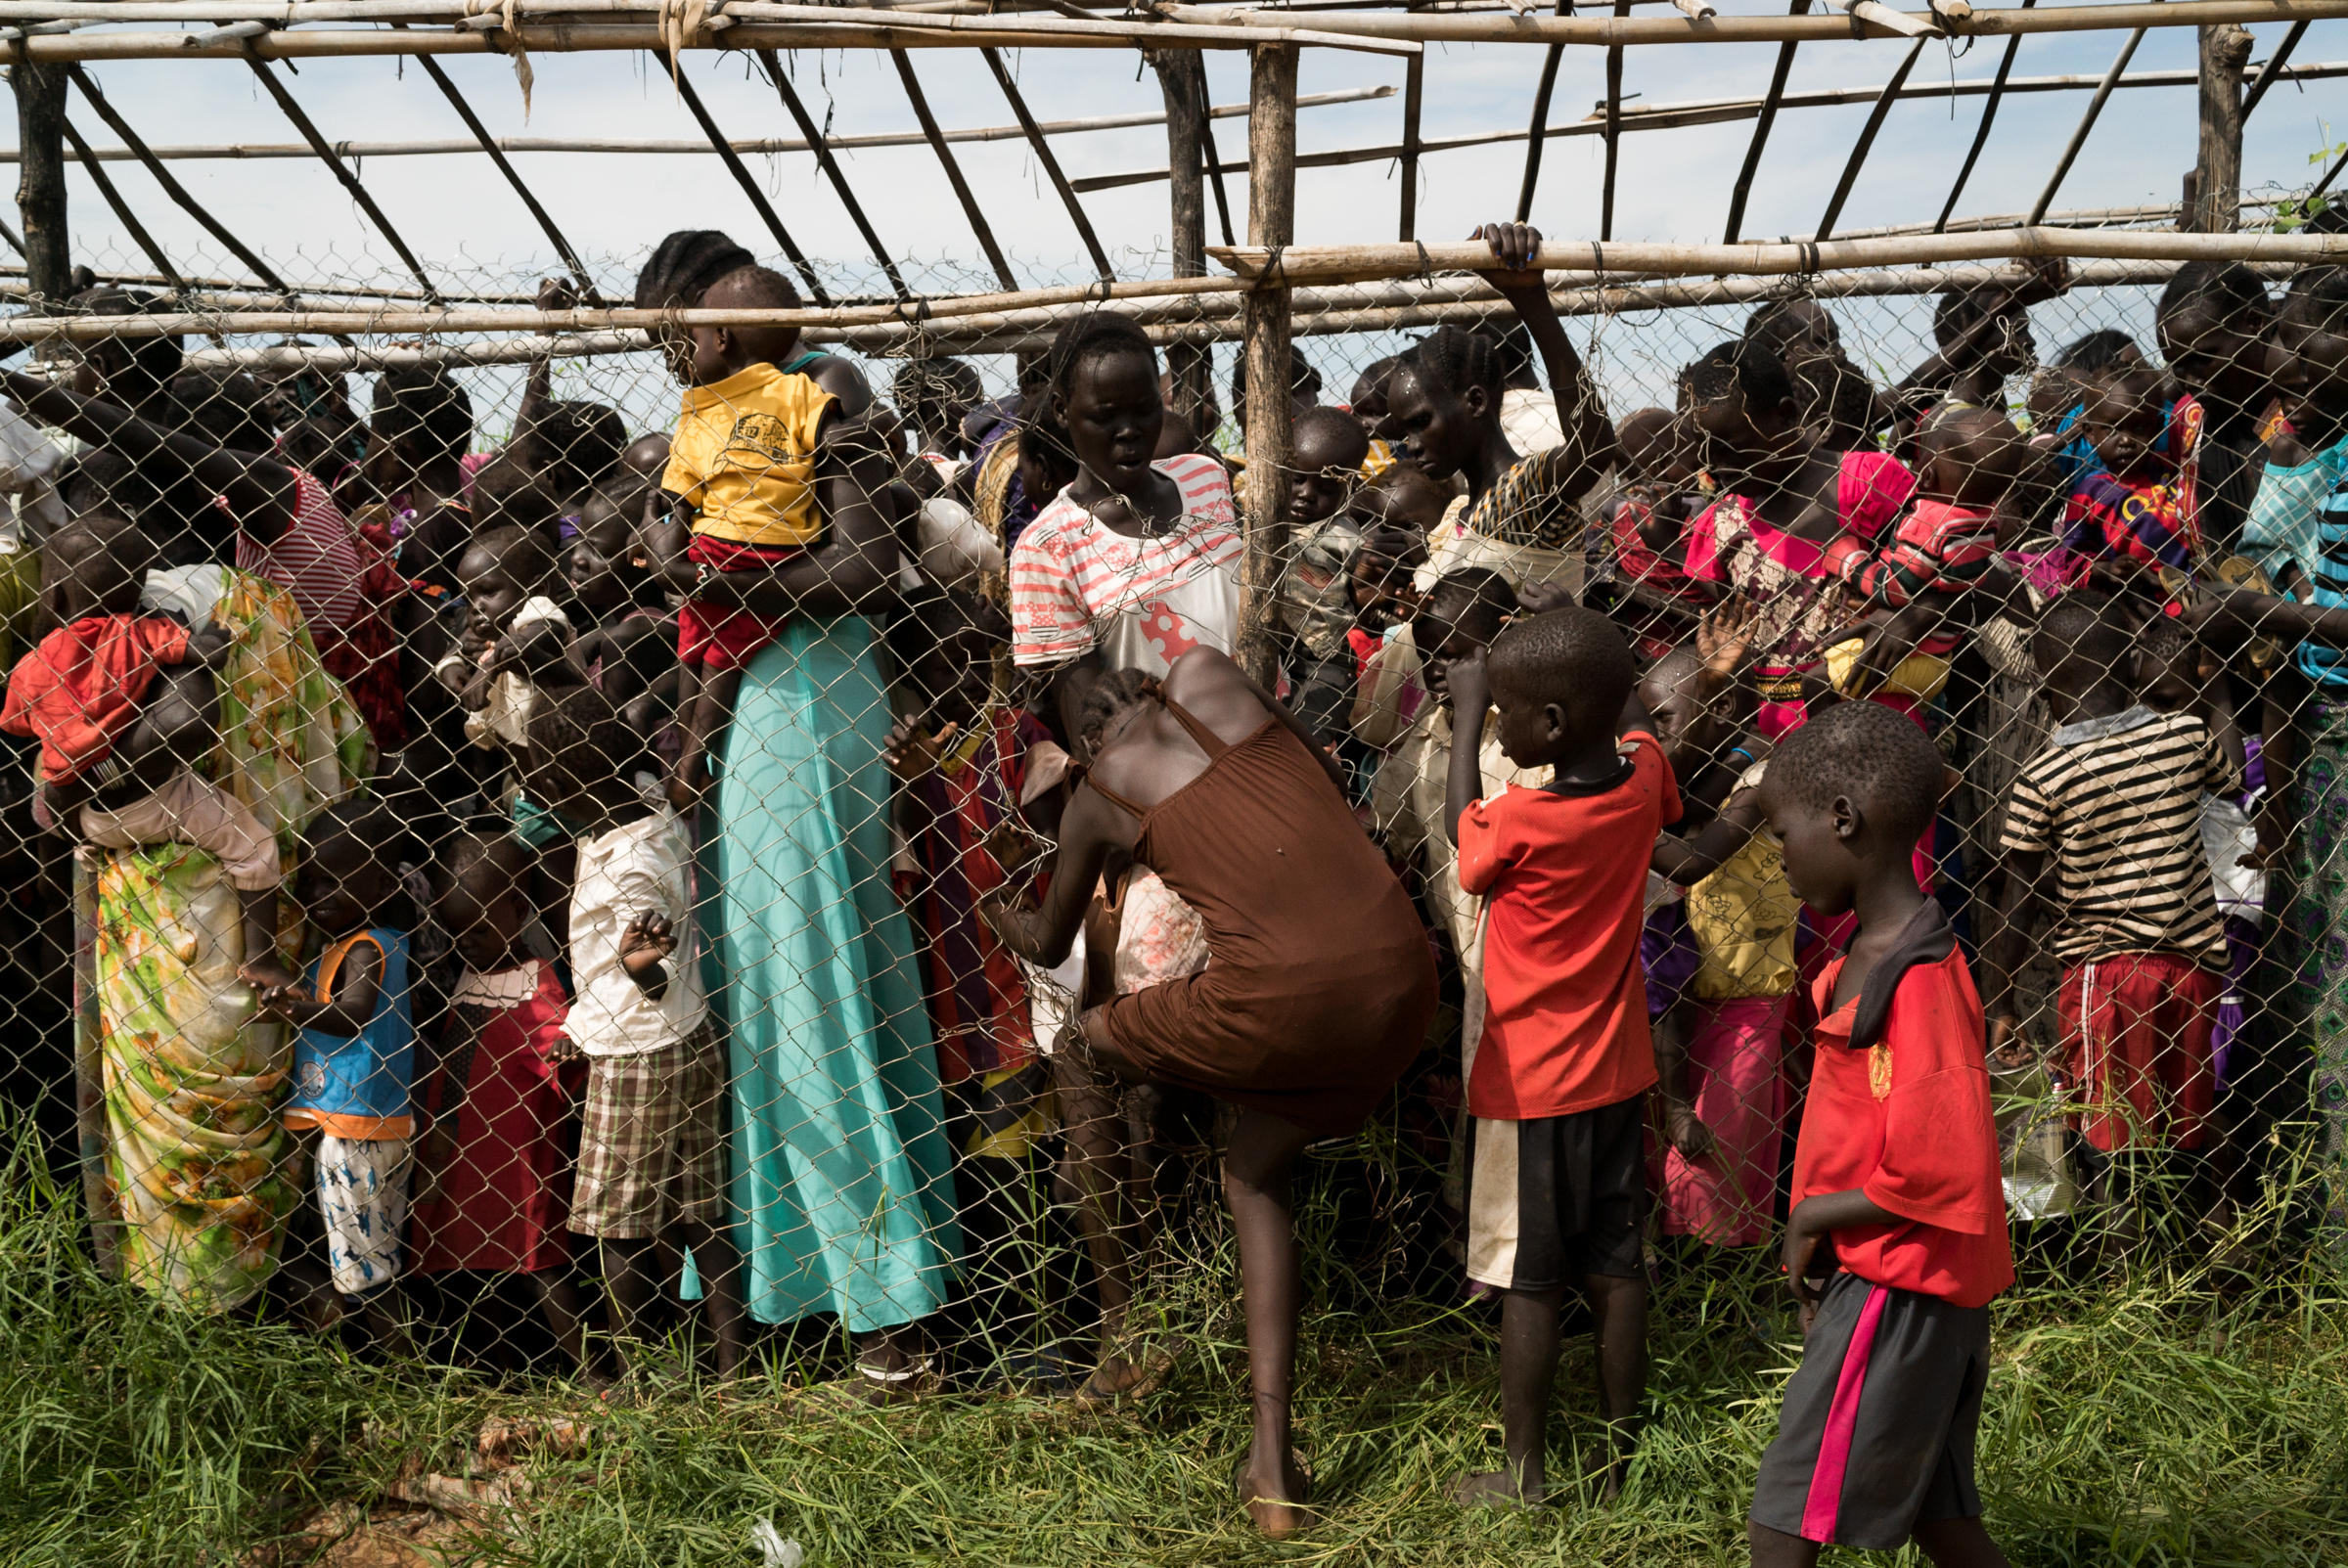 Women and children stand in line while a girl forces her way through the fence in order to receive emergency food at the UN site that houses over 38,000 displaced people i Juba, South Sudan, July 25, 2016.